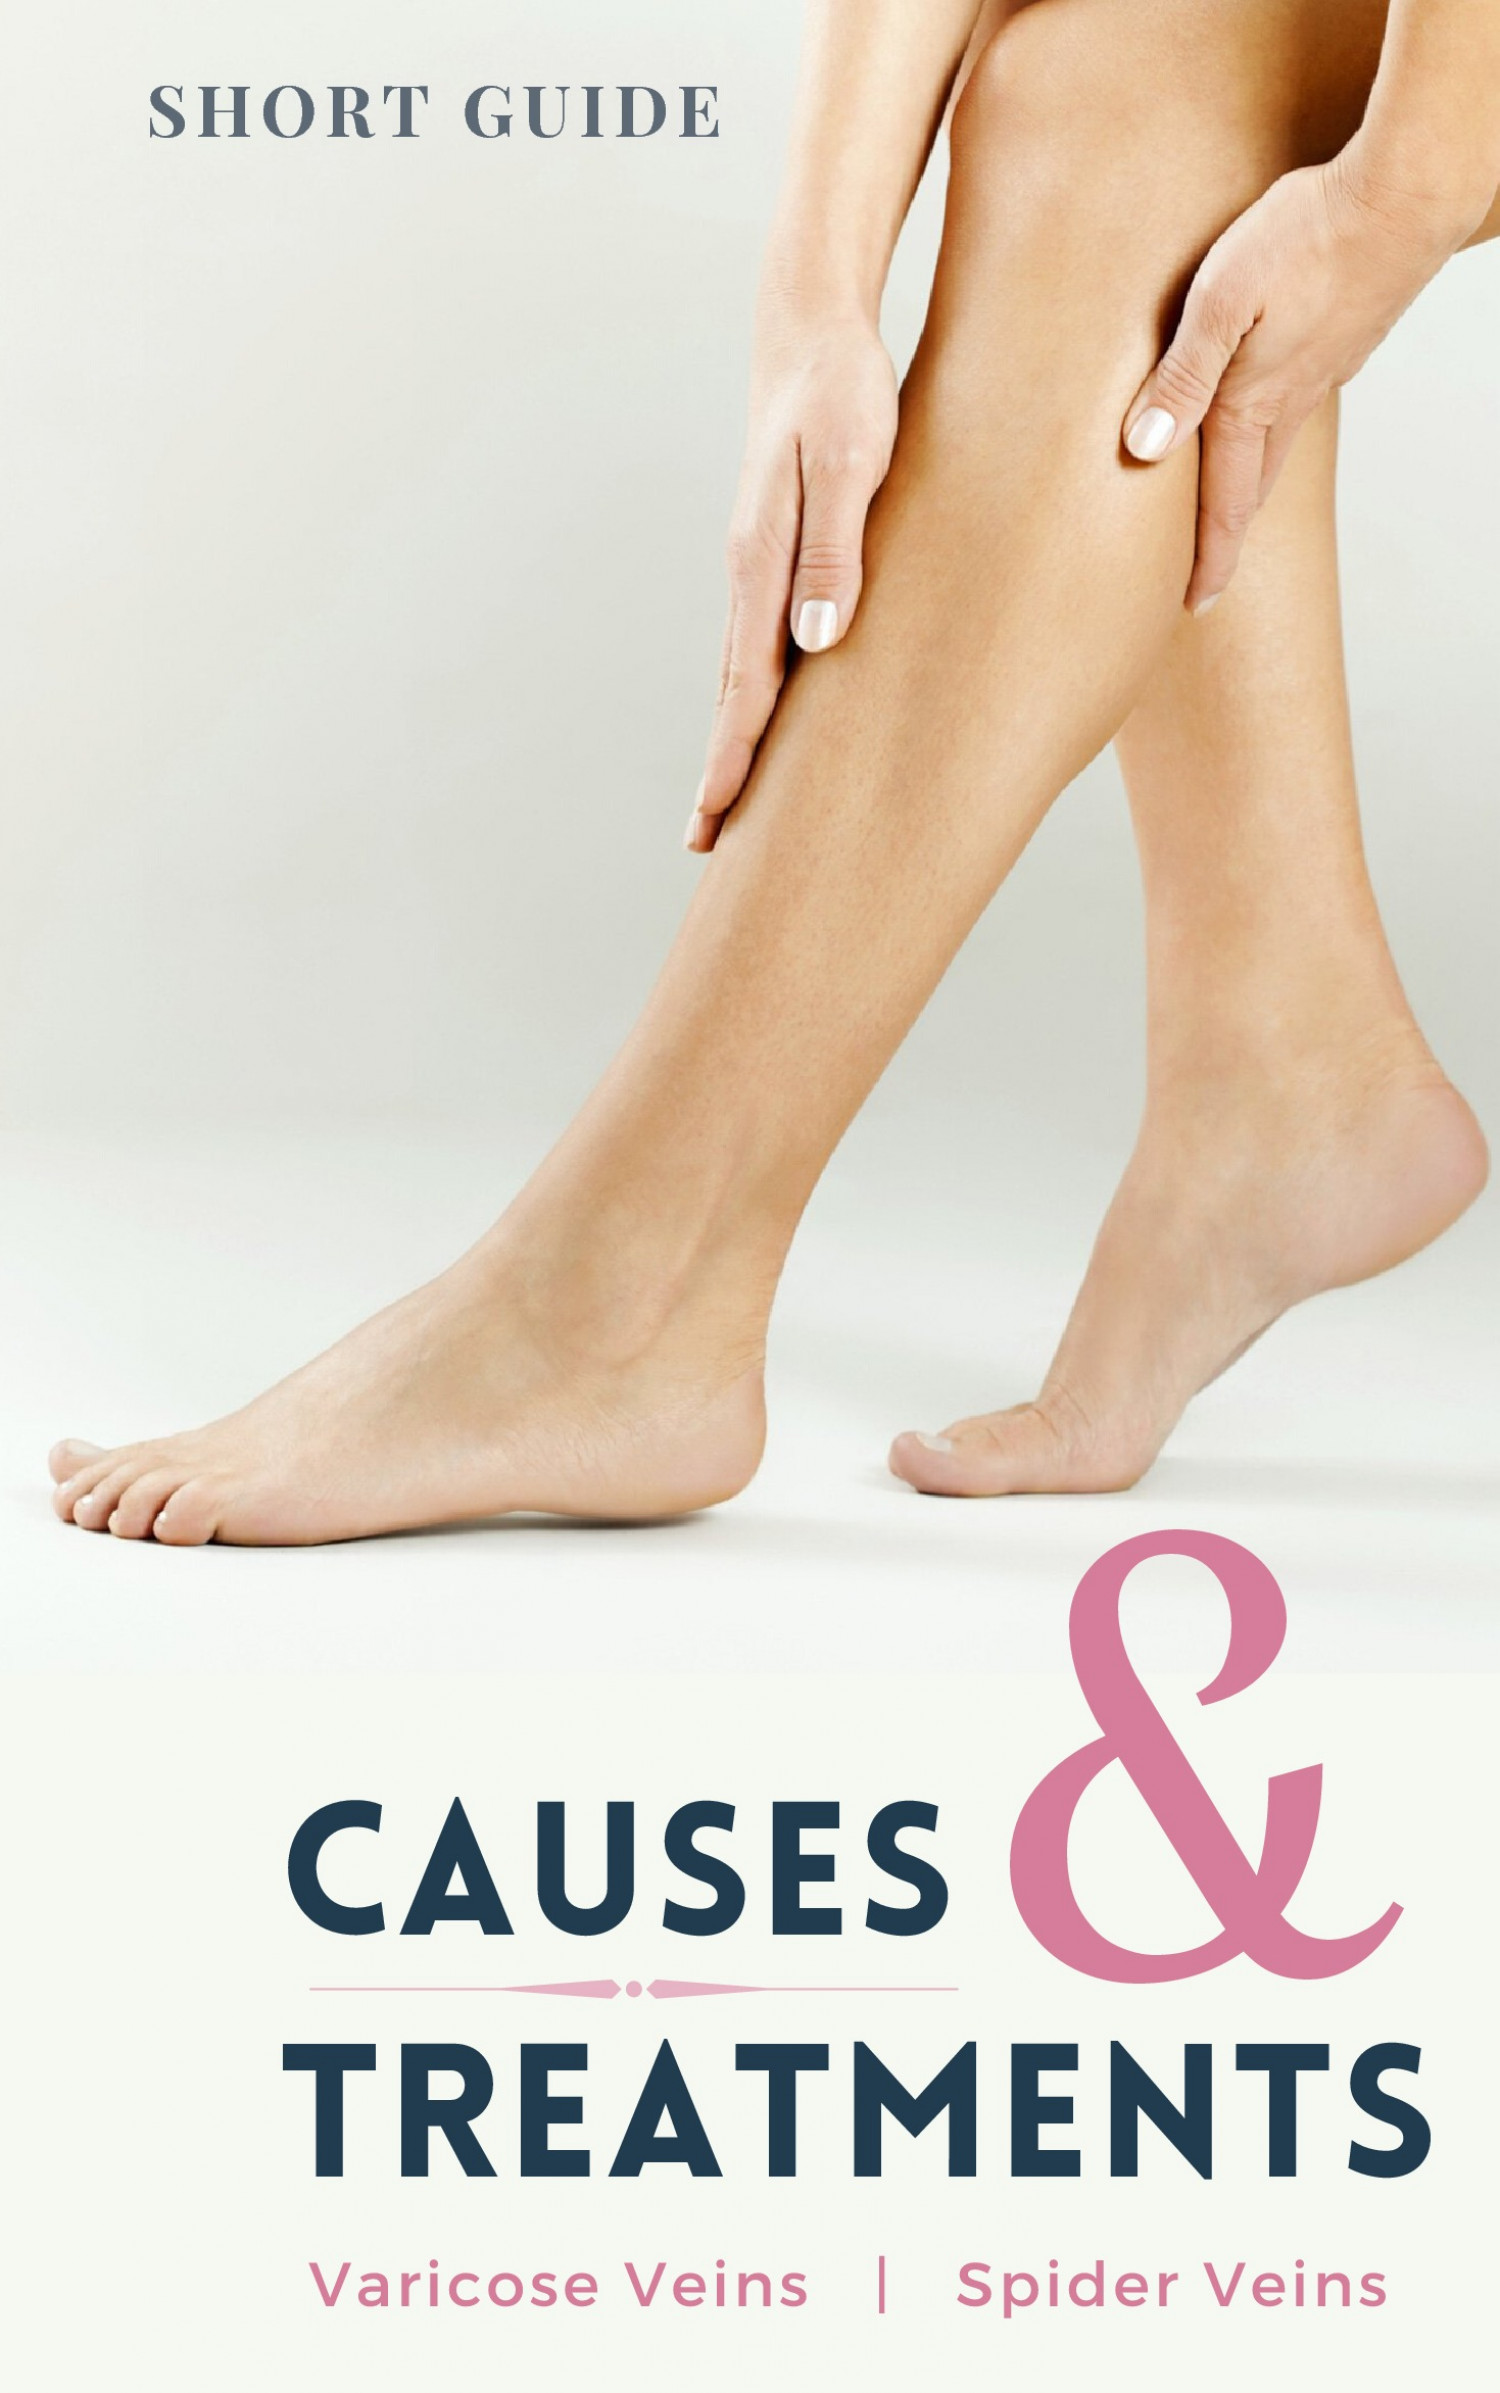 Causes and Treatments of Varicose Veins and Spider Veins Infographic